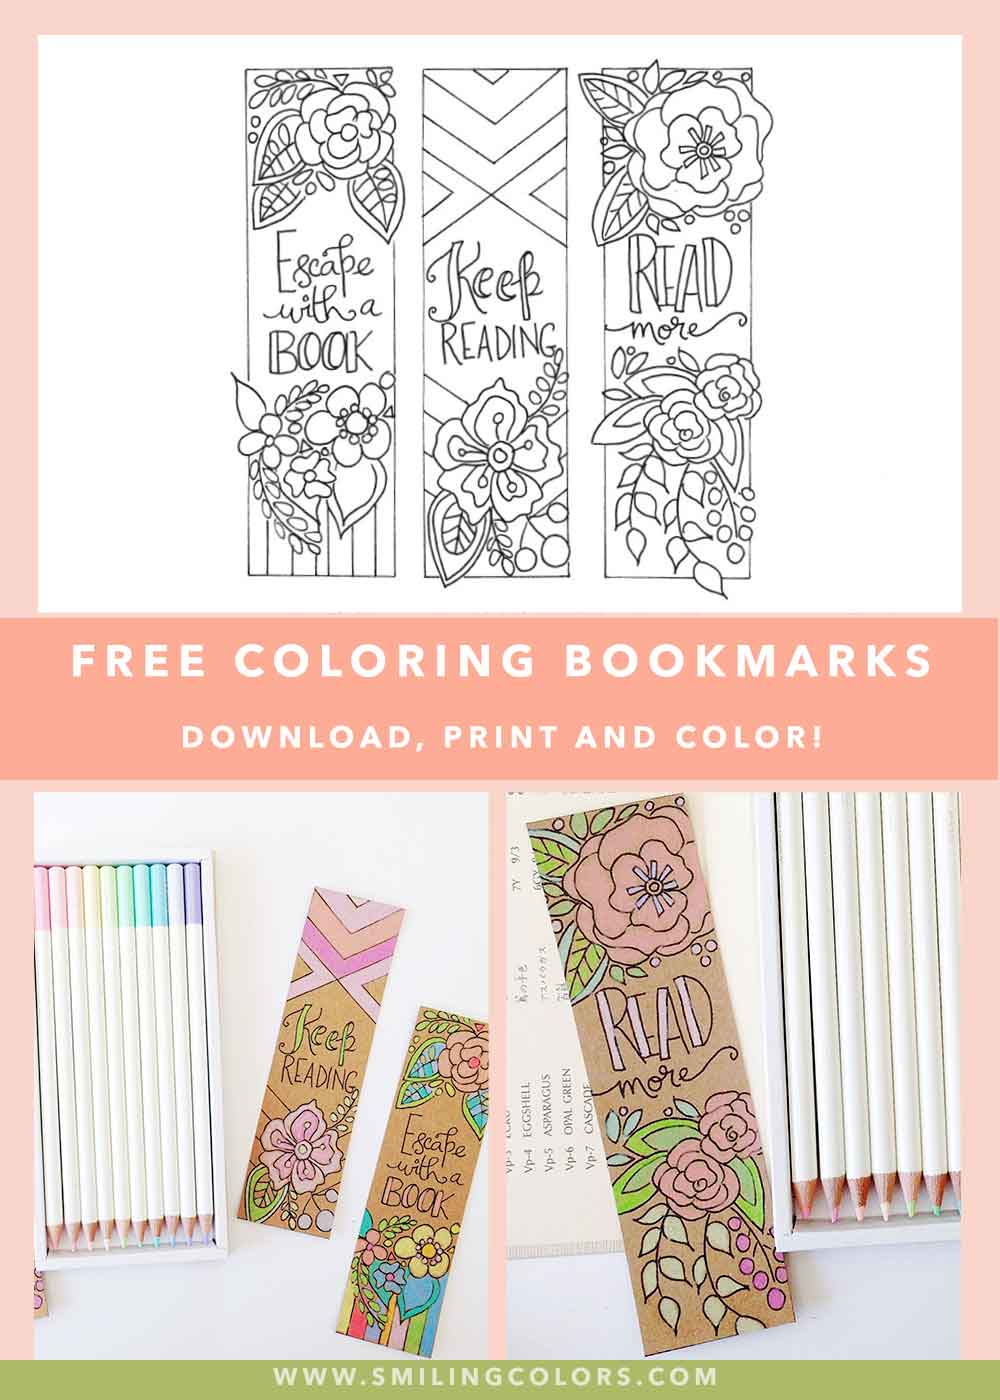 Free Coloring Bookmarks To Make Your Reading Colorful Smiling Colors